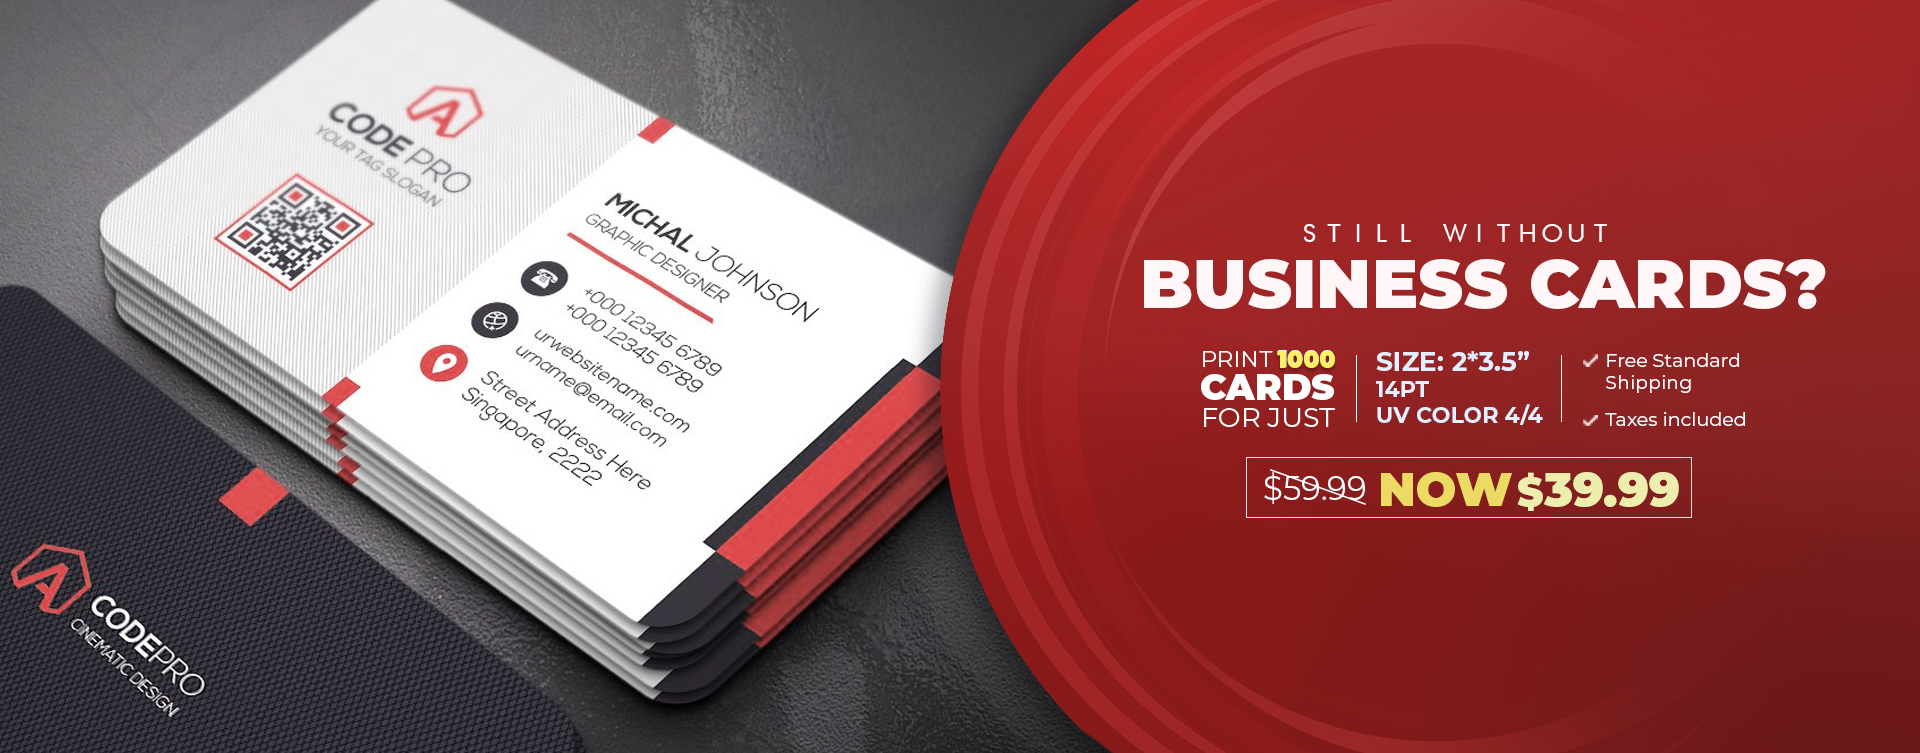 Img Business cards